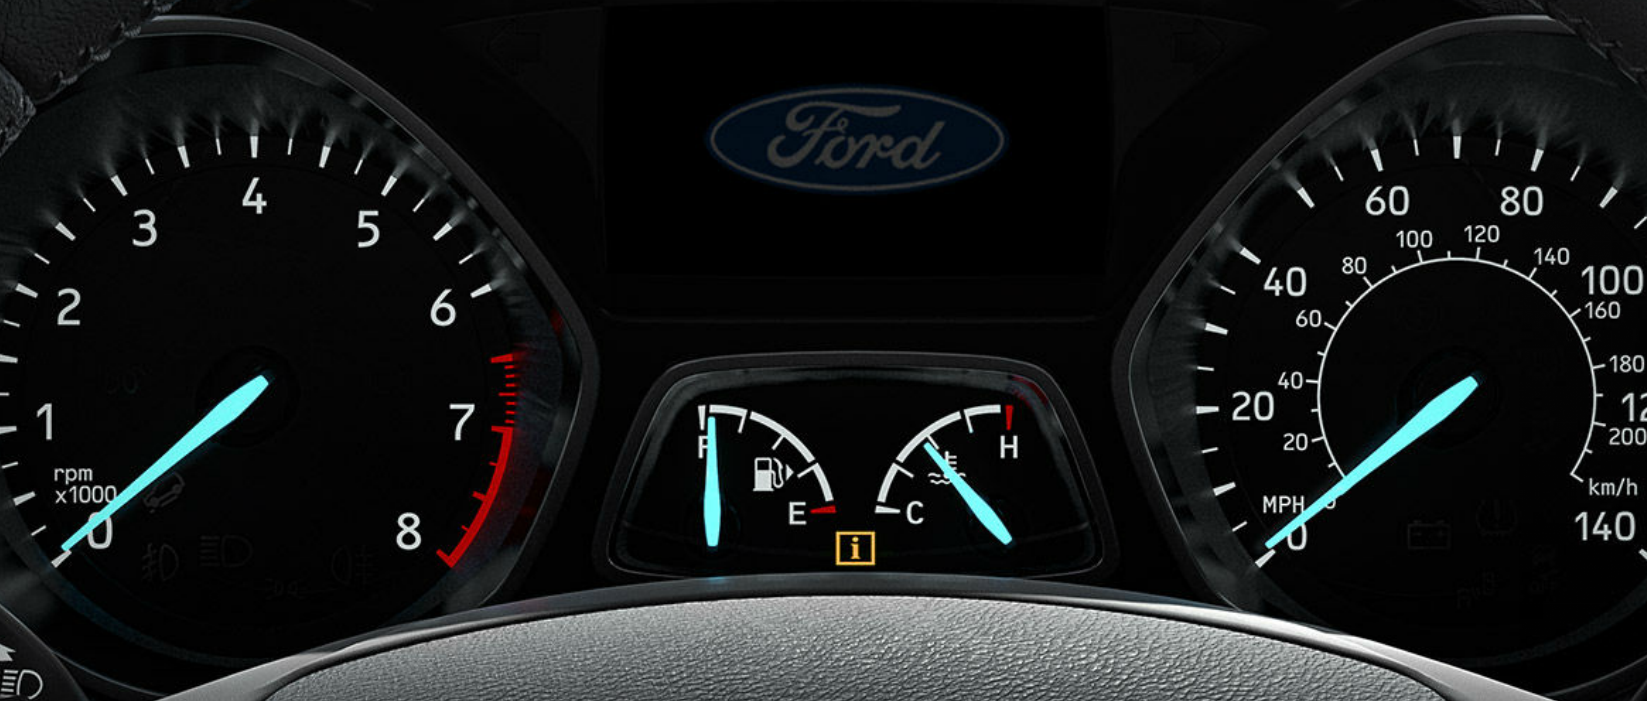 Valley Chevy - Top-Rated SUVs to Buy: Ford Escape - Spedometer & Rev Counter